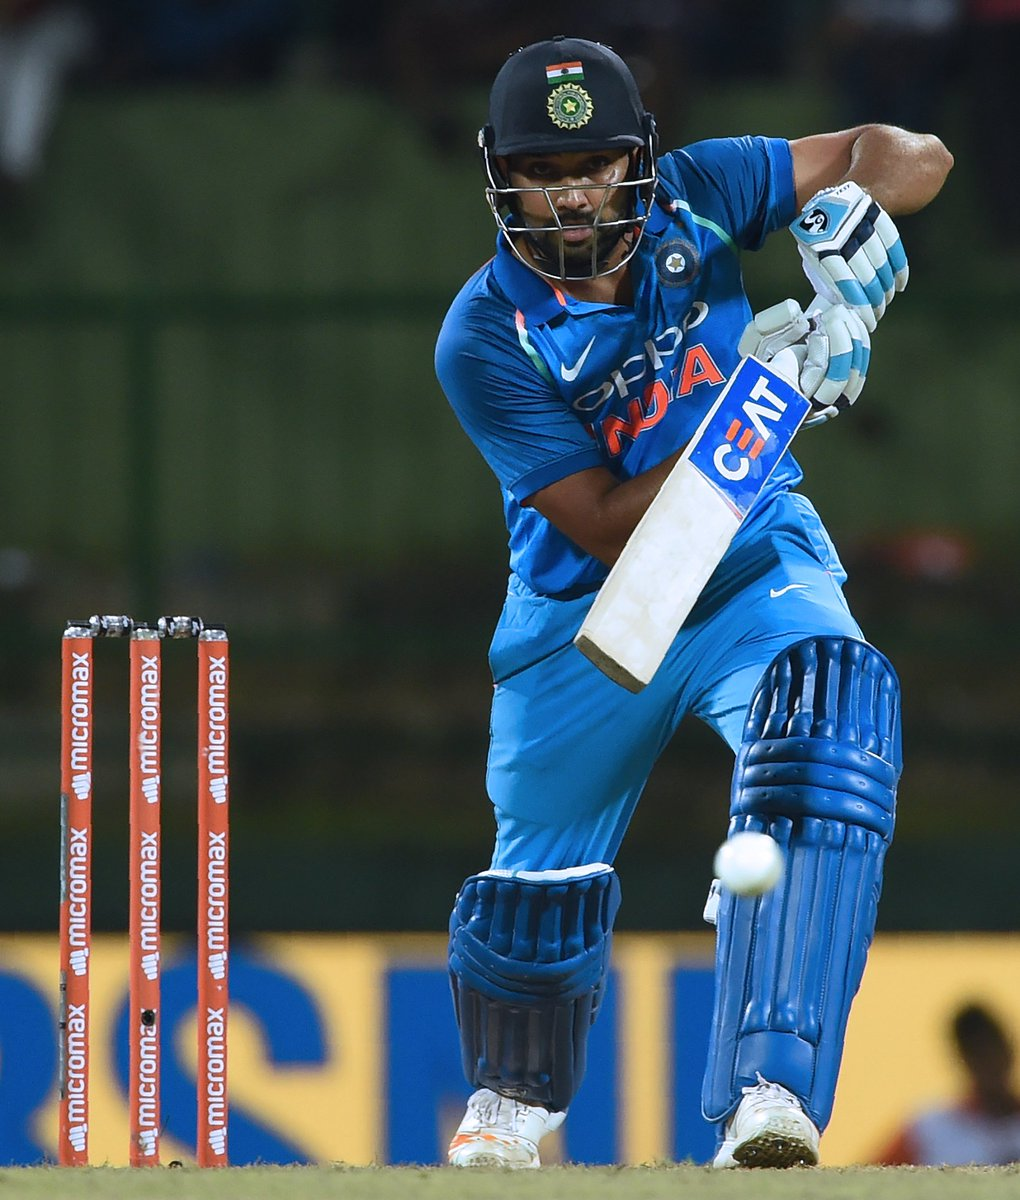 Superb hundred from Rohit Sharma, leading India's recovery from 61/4 and taking control of the chase #SLvIND